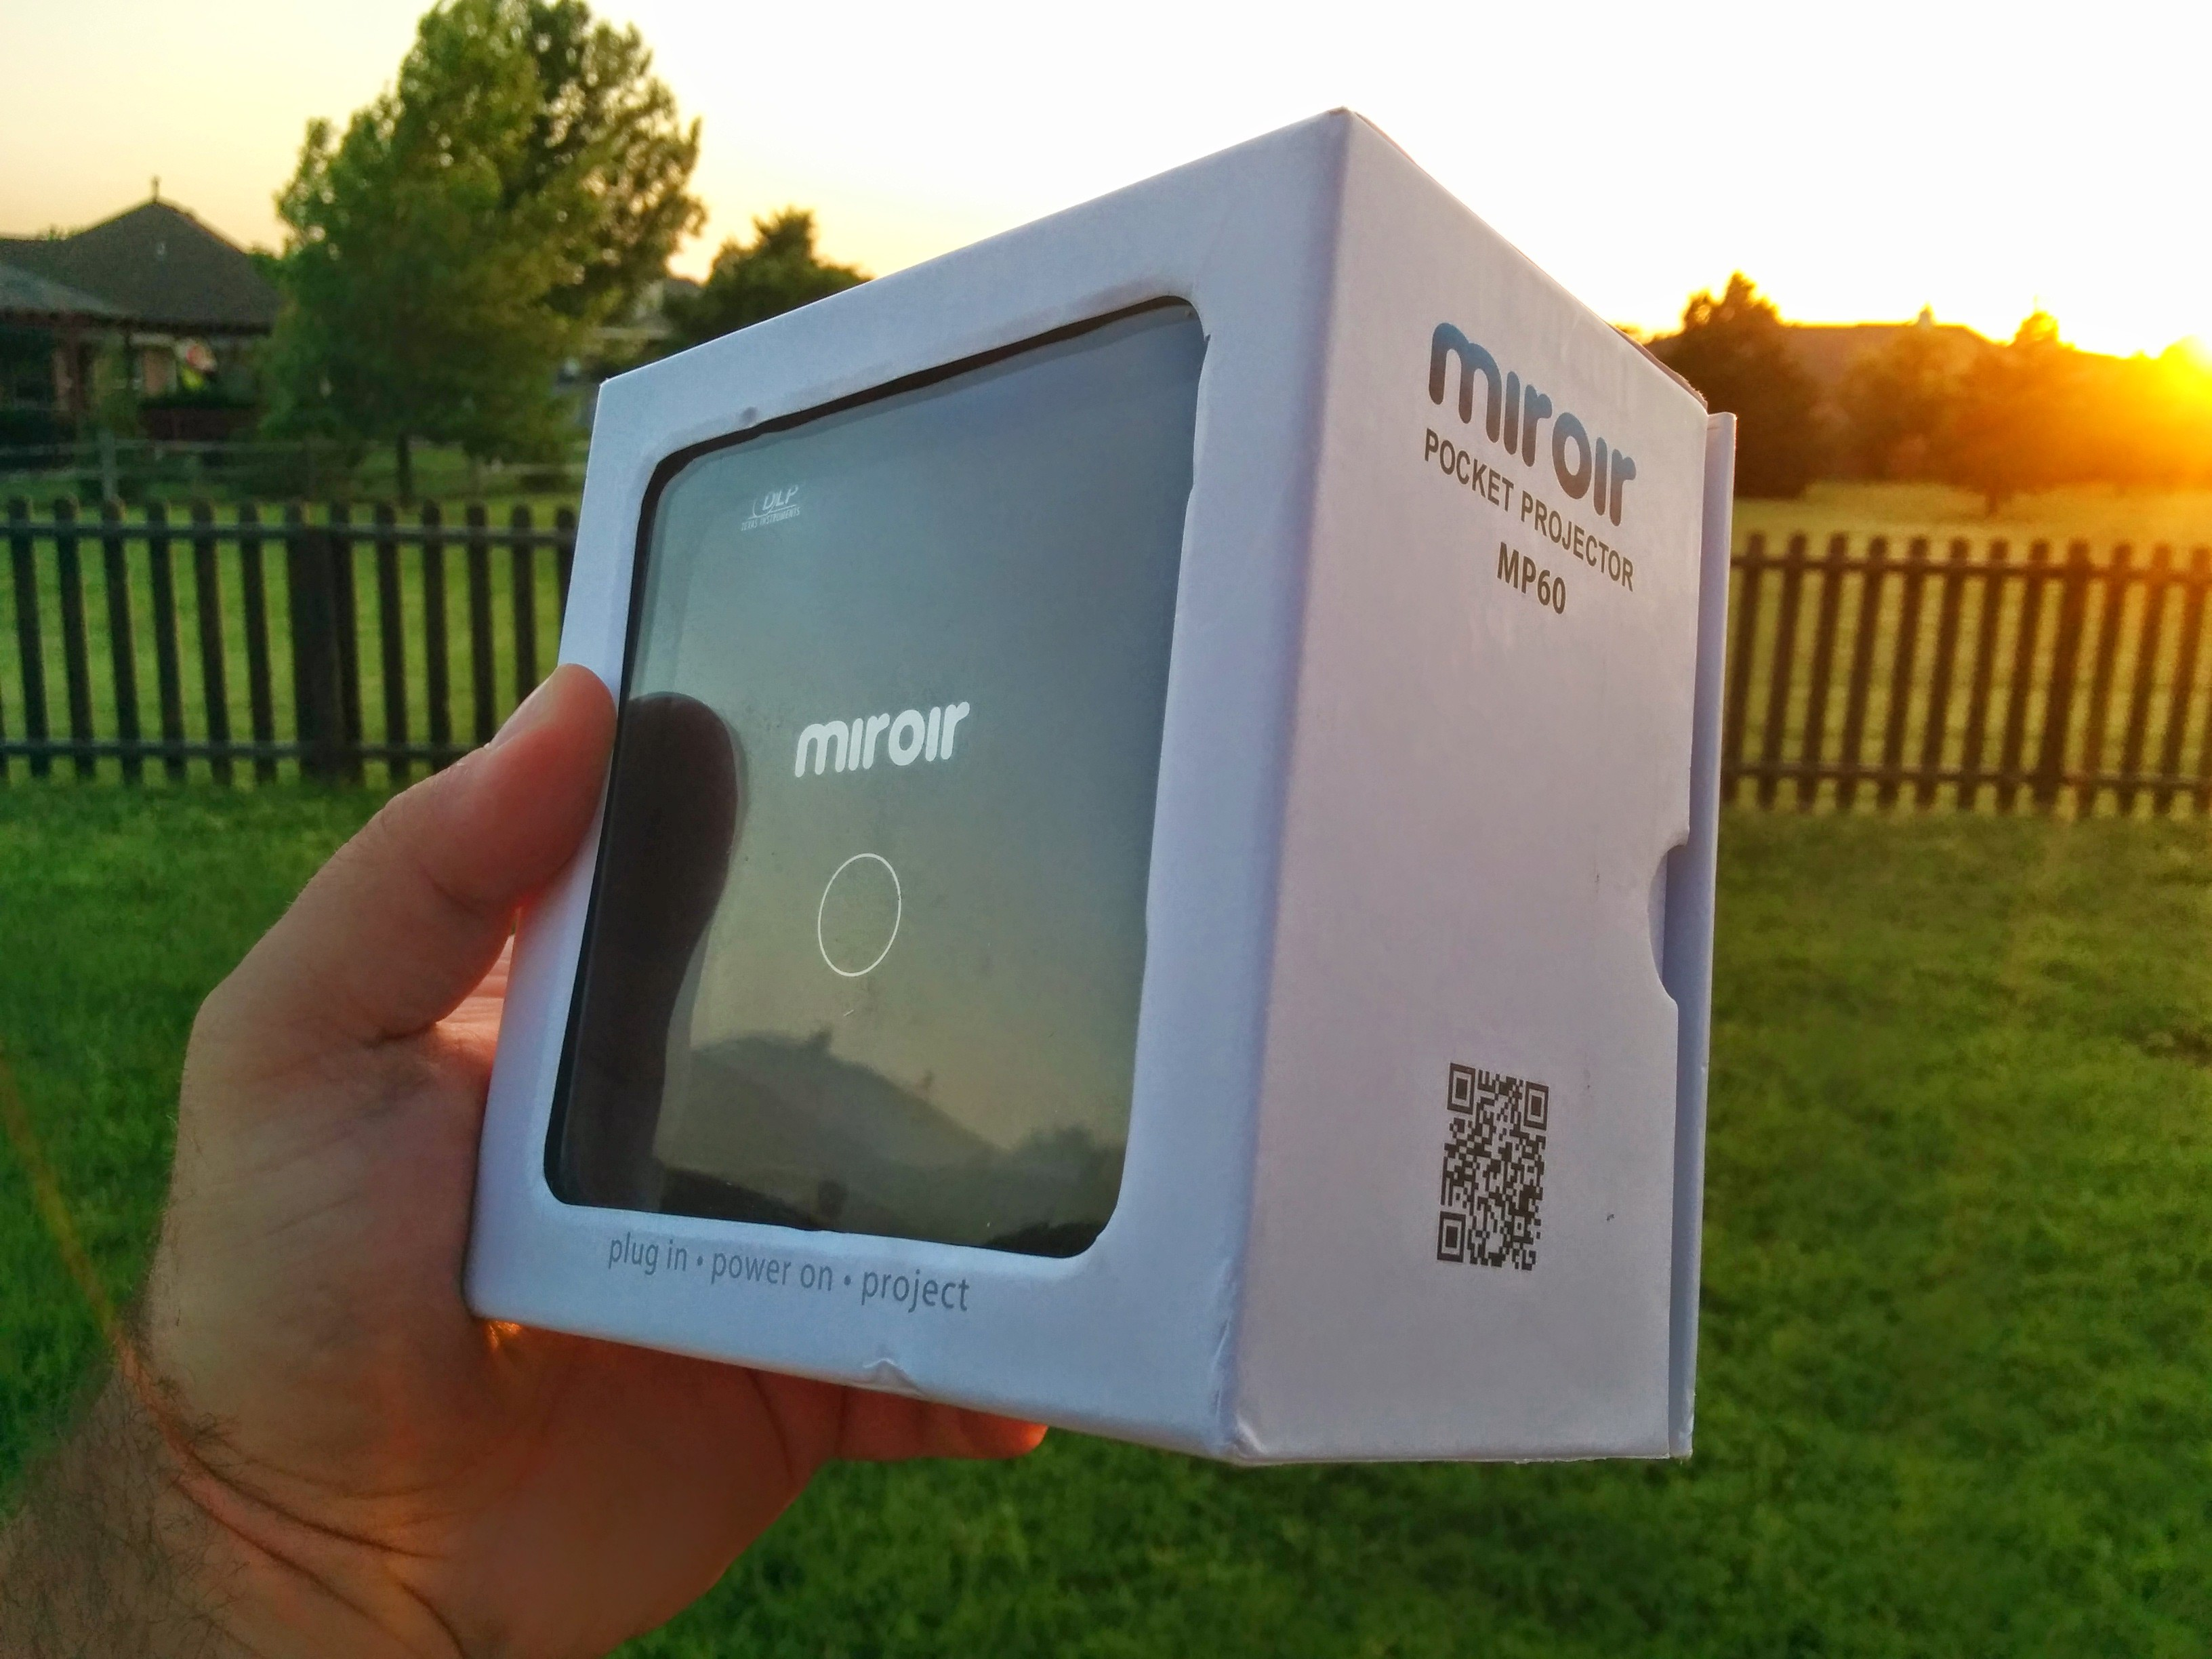 Product review miroir mp60 pocket projector the droid for Mp60 pocket projector